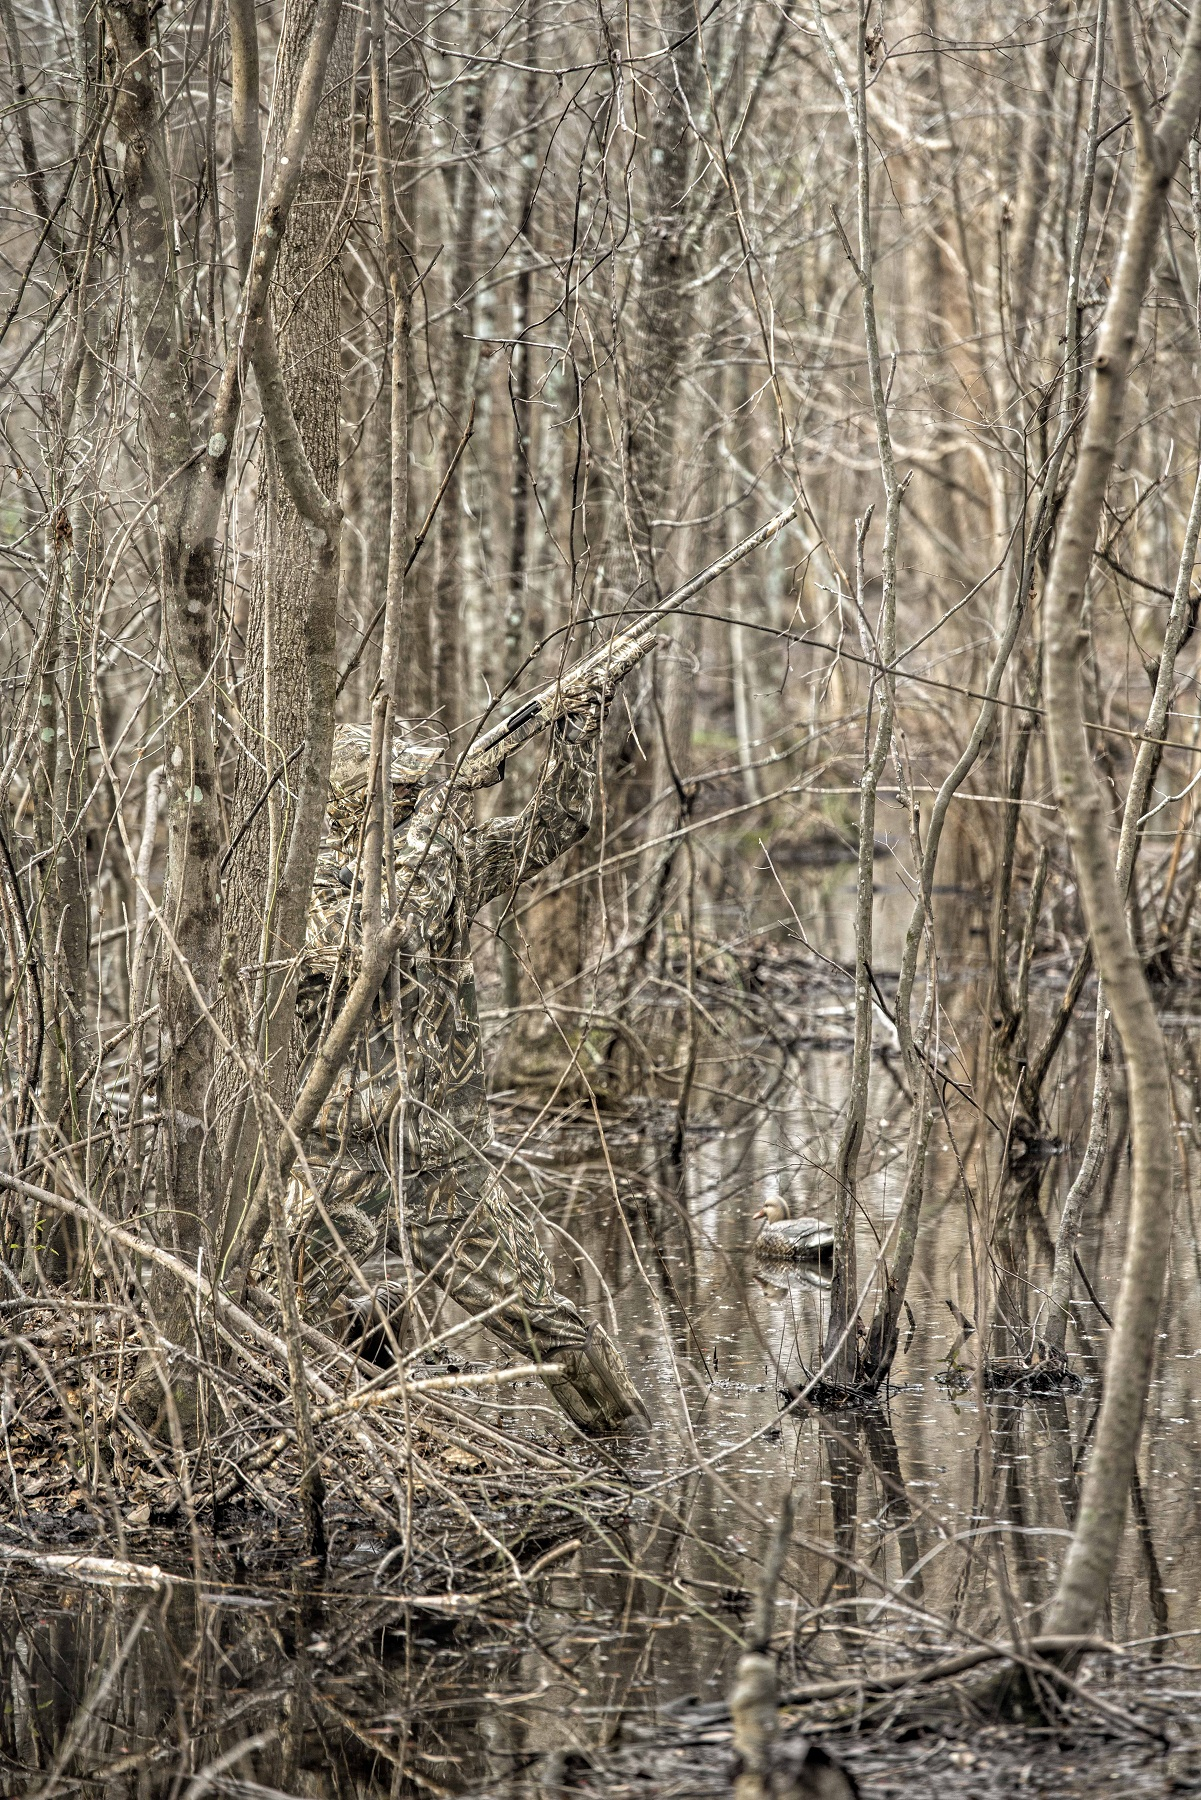 Realtree camo wallpapers. Yes, there'-s an app for that.  